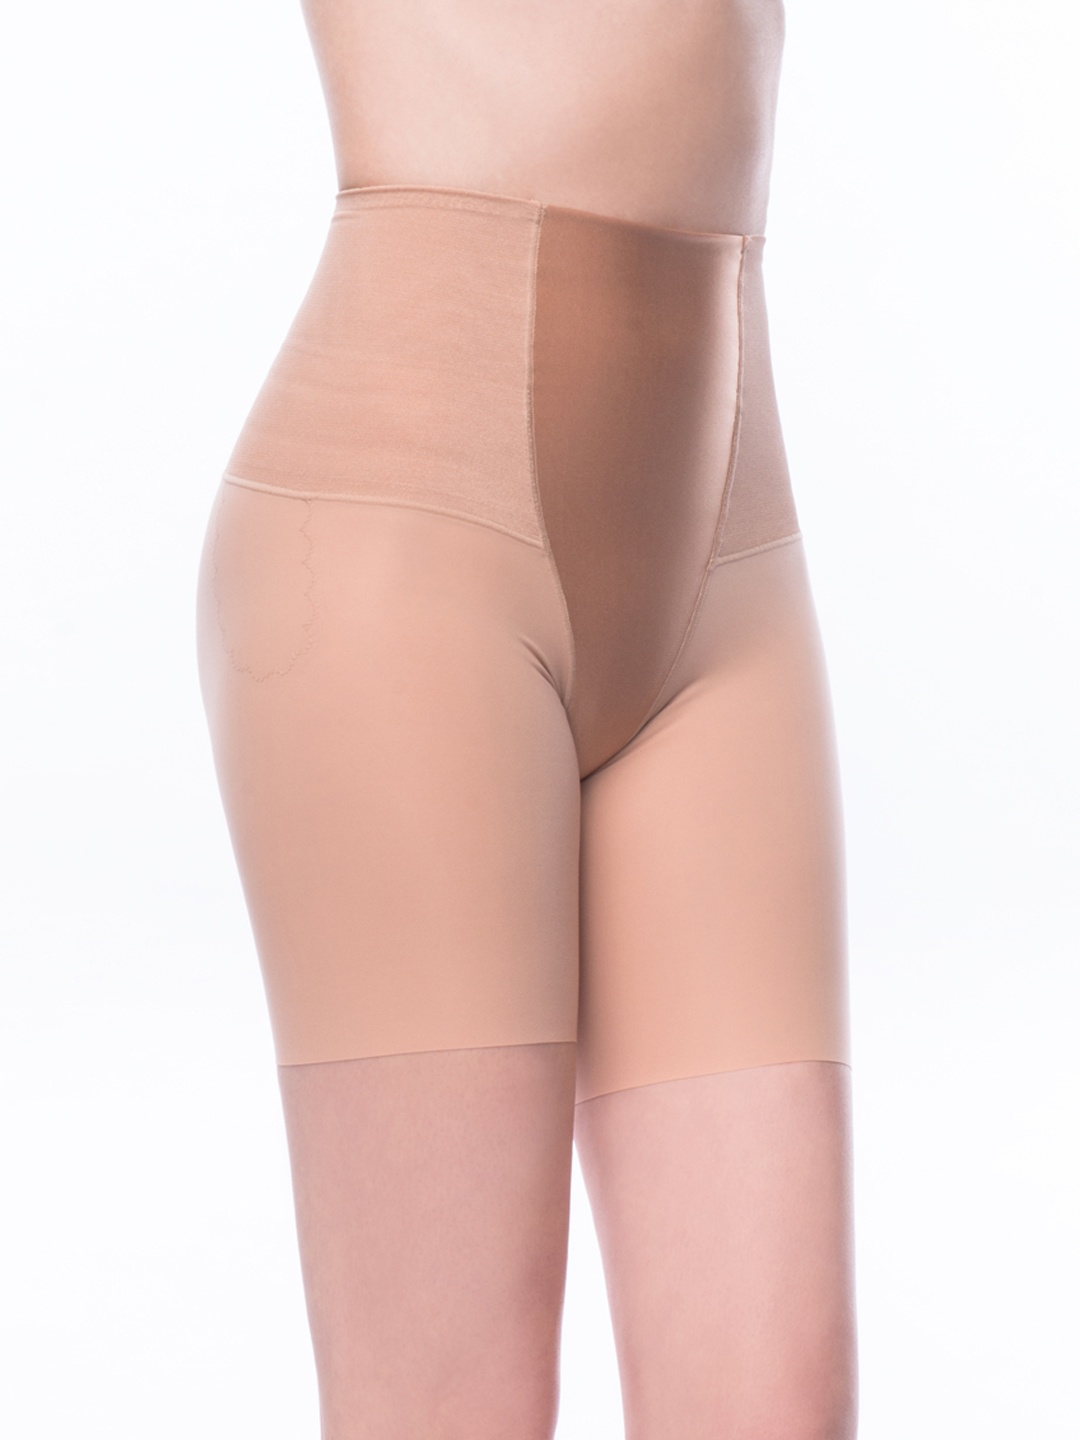 Suhada Girdle MGR171